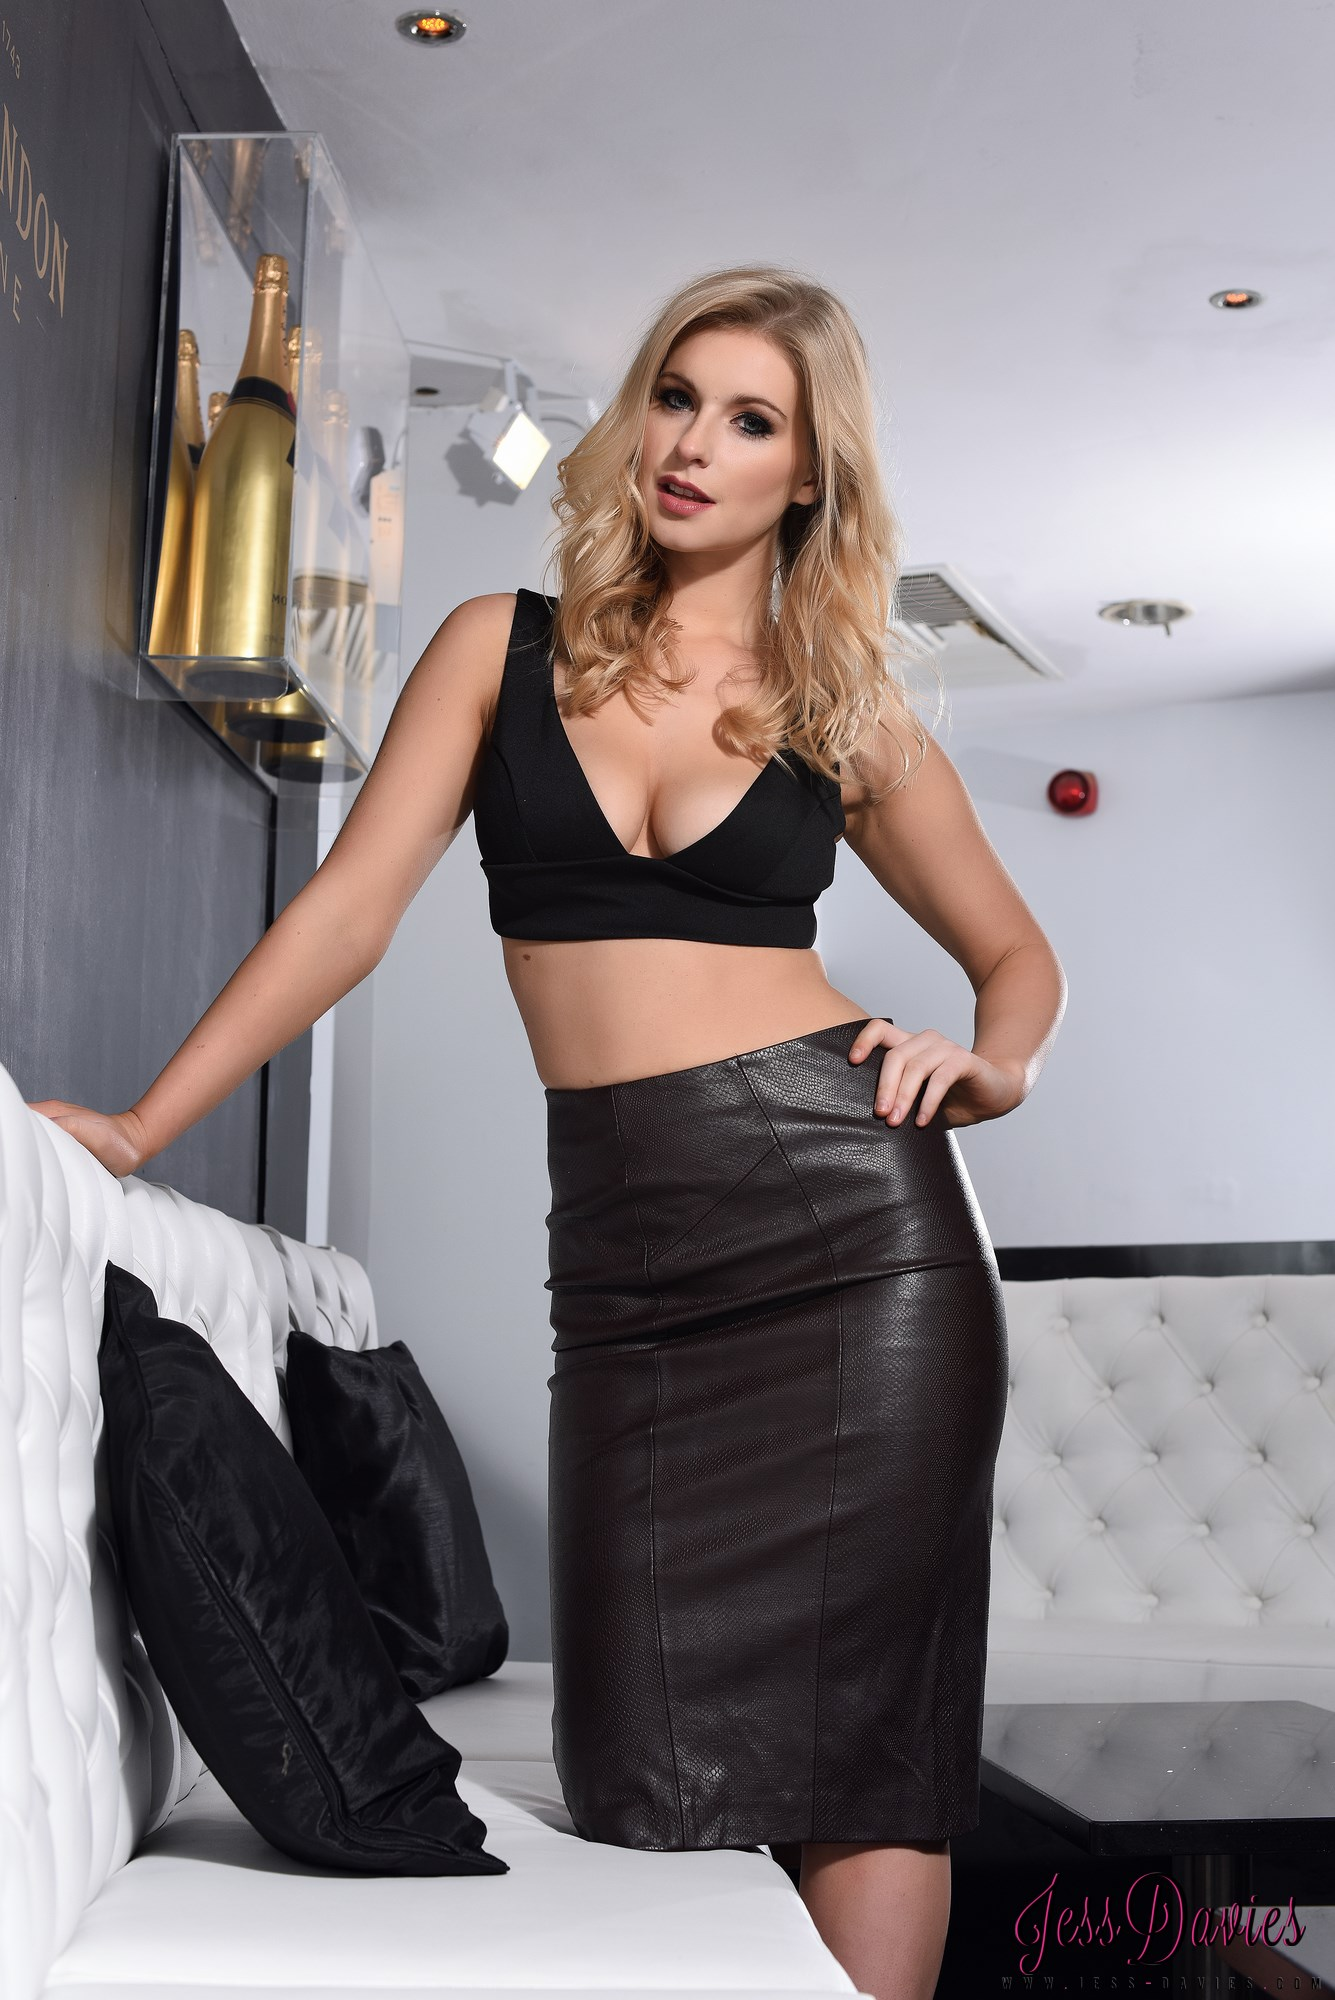 Jess Davies Teasing In Her Black Leather Skirt And Top 64349-8760